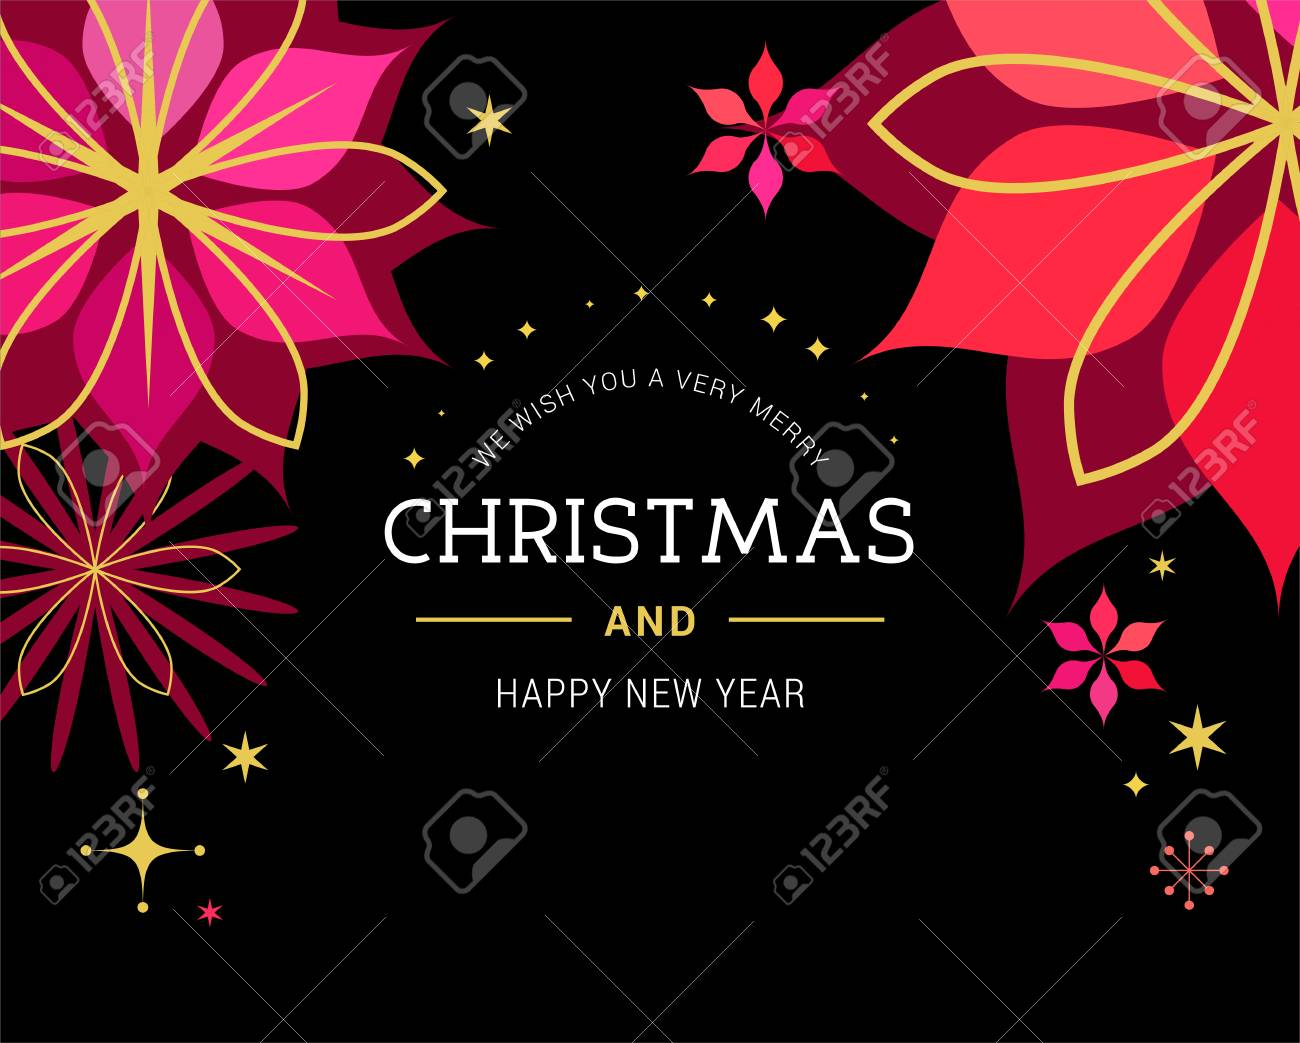 christmas red classic background greeting card banner with xmas flowers ornaments and lettering